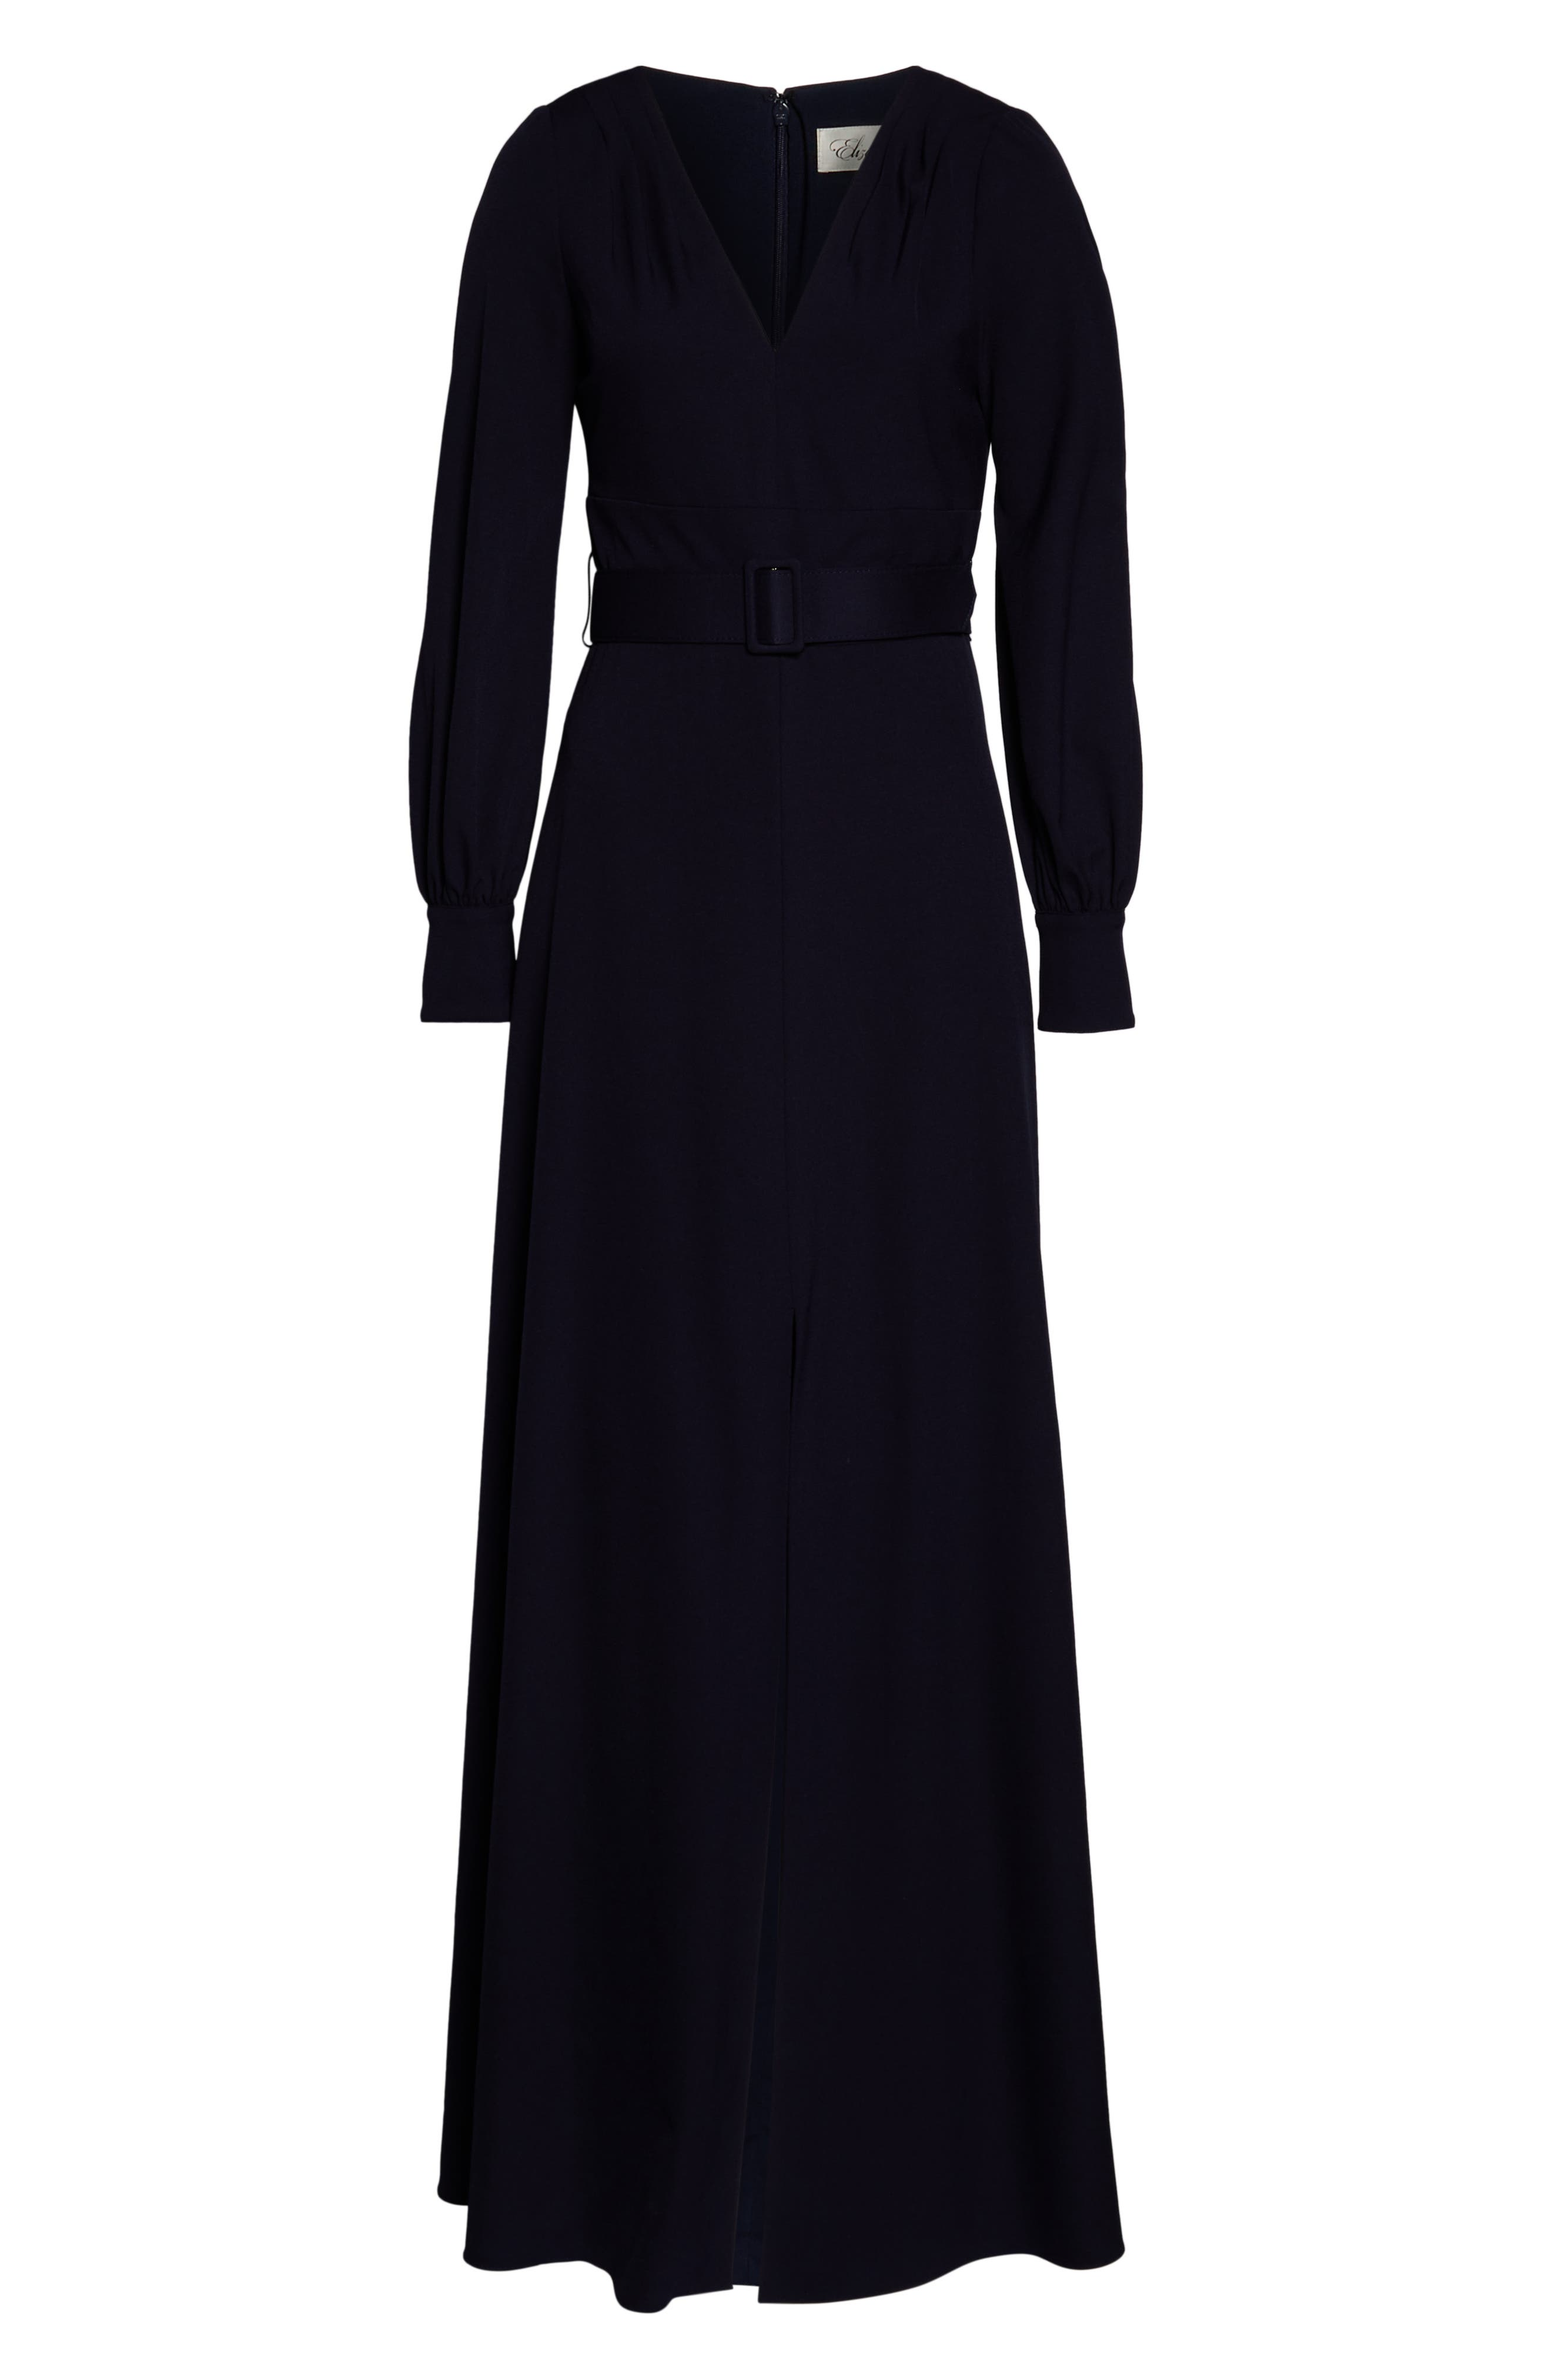 ELIZA J, Long Sleeve Belted Gown, Alternate thumbnail 7, color, NAVY